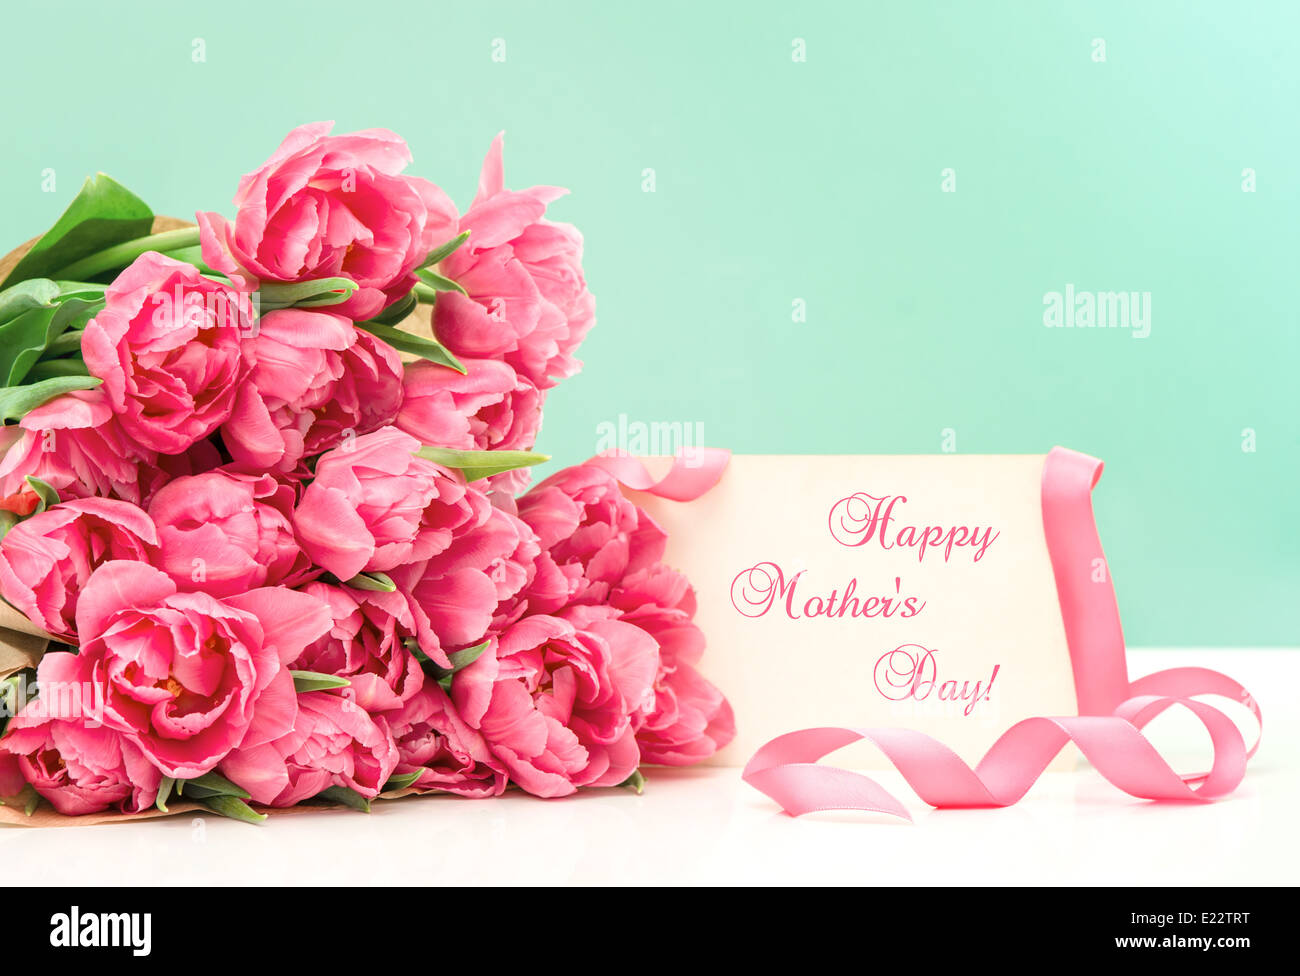 Pink tulips and greeting card with sample text happy mothers day pink tulips and greeting card with sample text happy mothers day kristyandbryce Choice Image